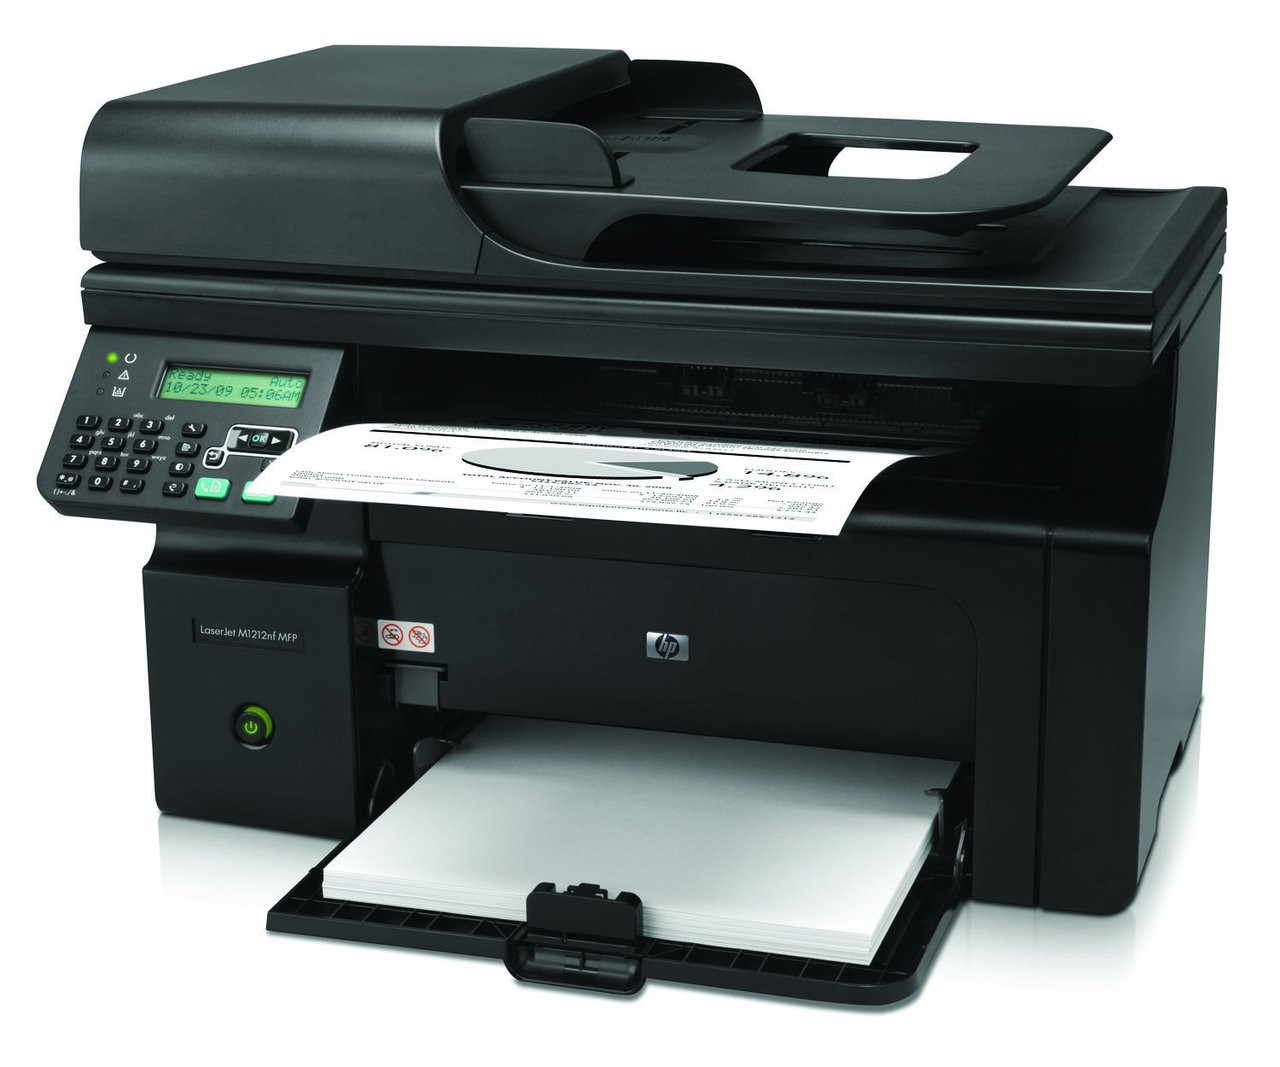 HP LaserJet Pro M1212nf MFP - CE841A - HP Laser Printer for sale